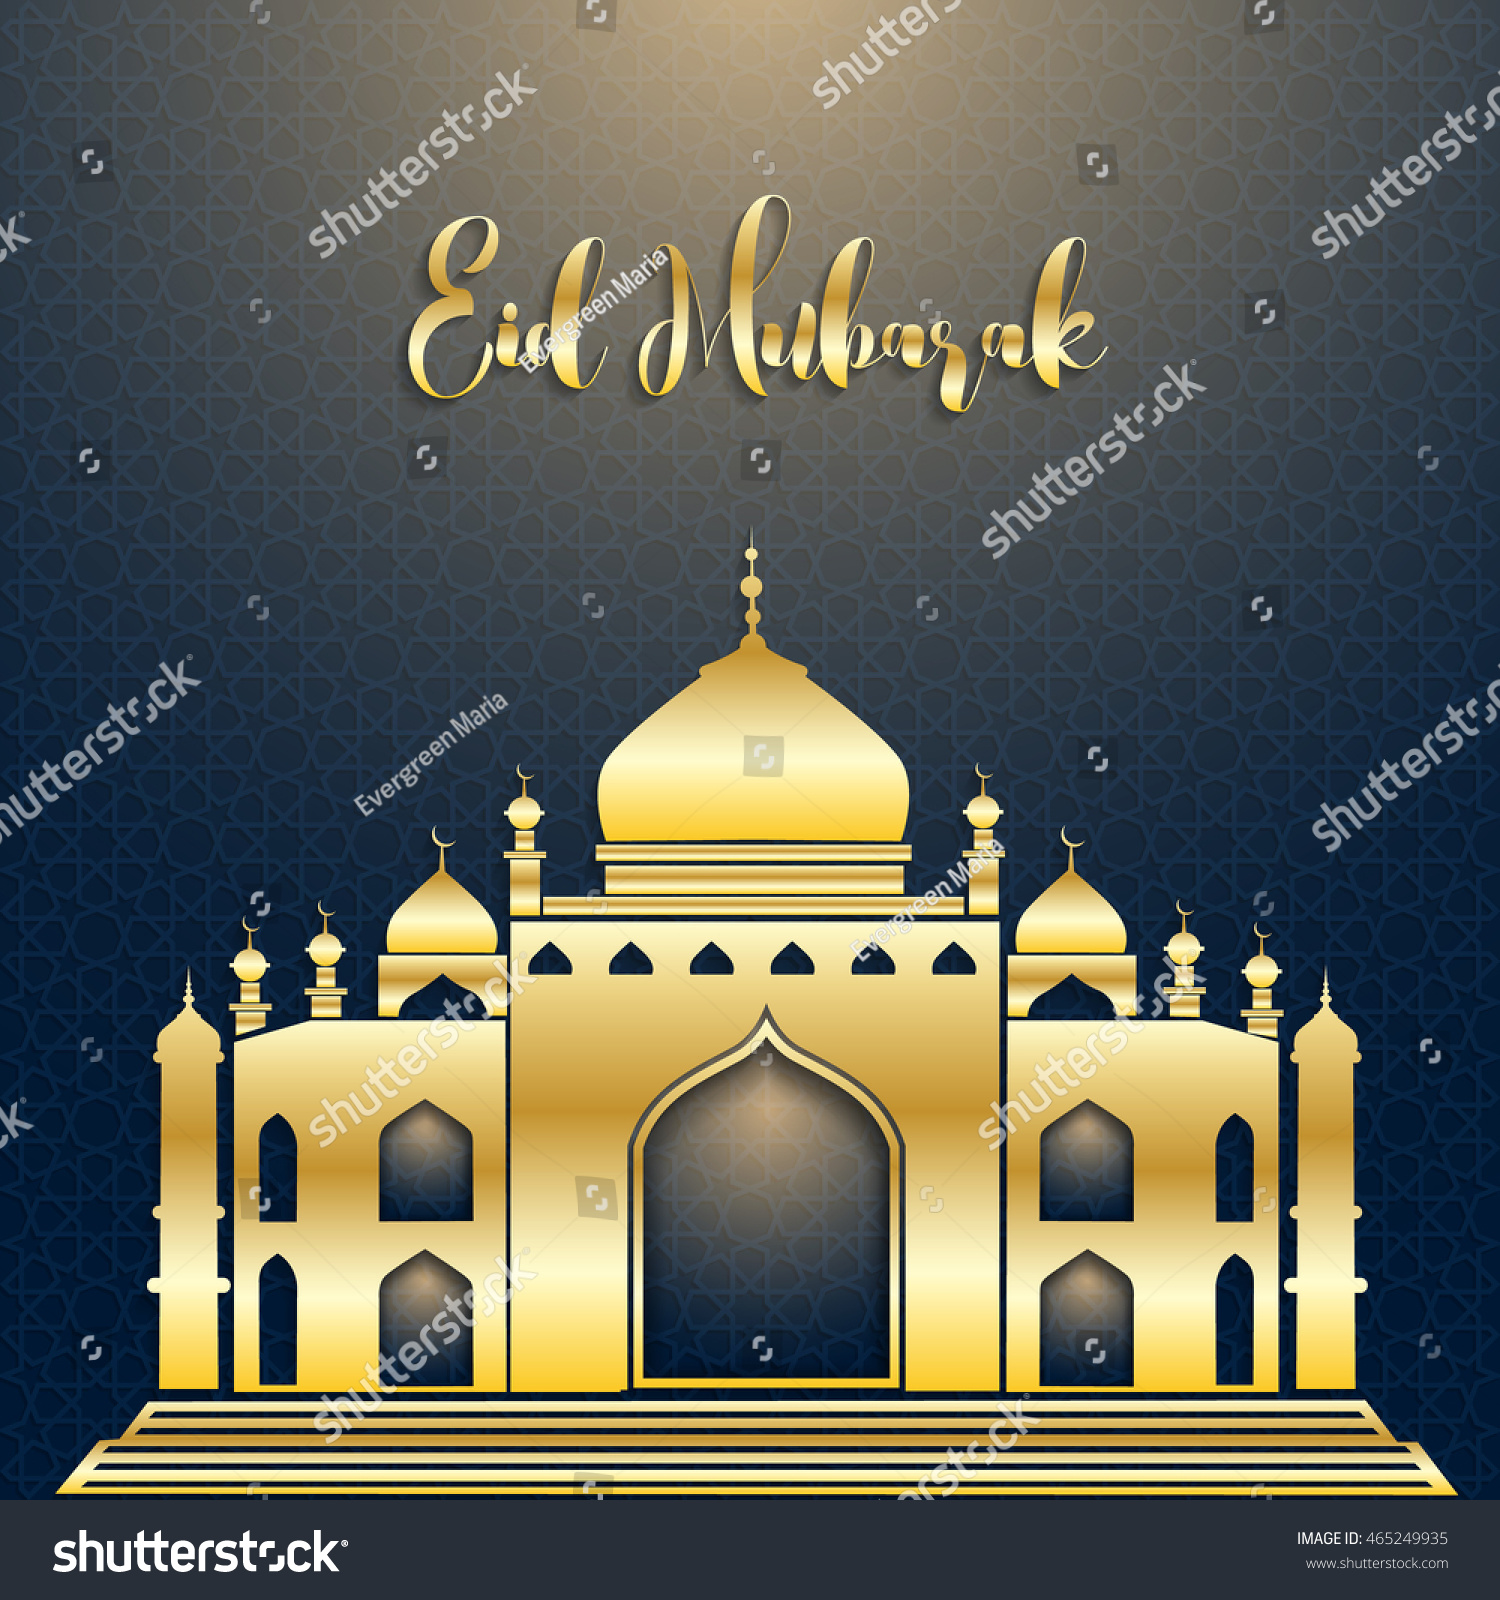 Eid Mubarak Arabic Calligraphy Eid Ul Adha Beautiful Greeting Card